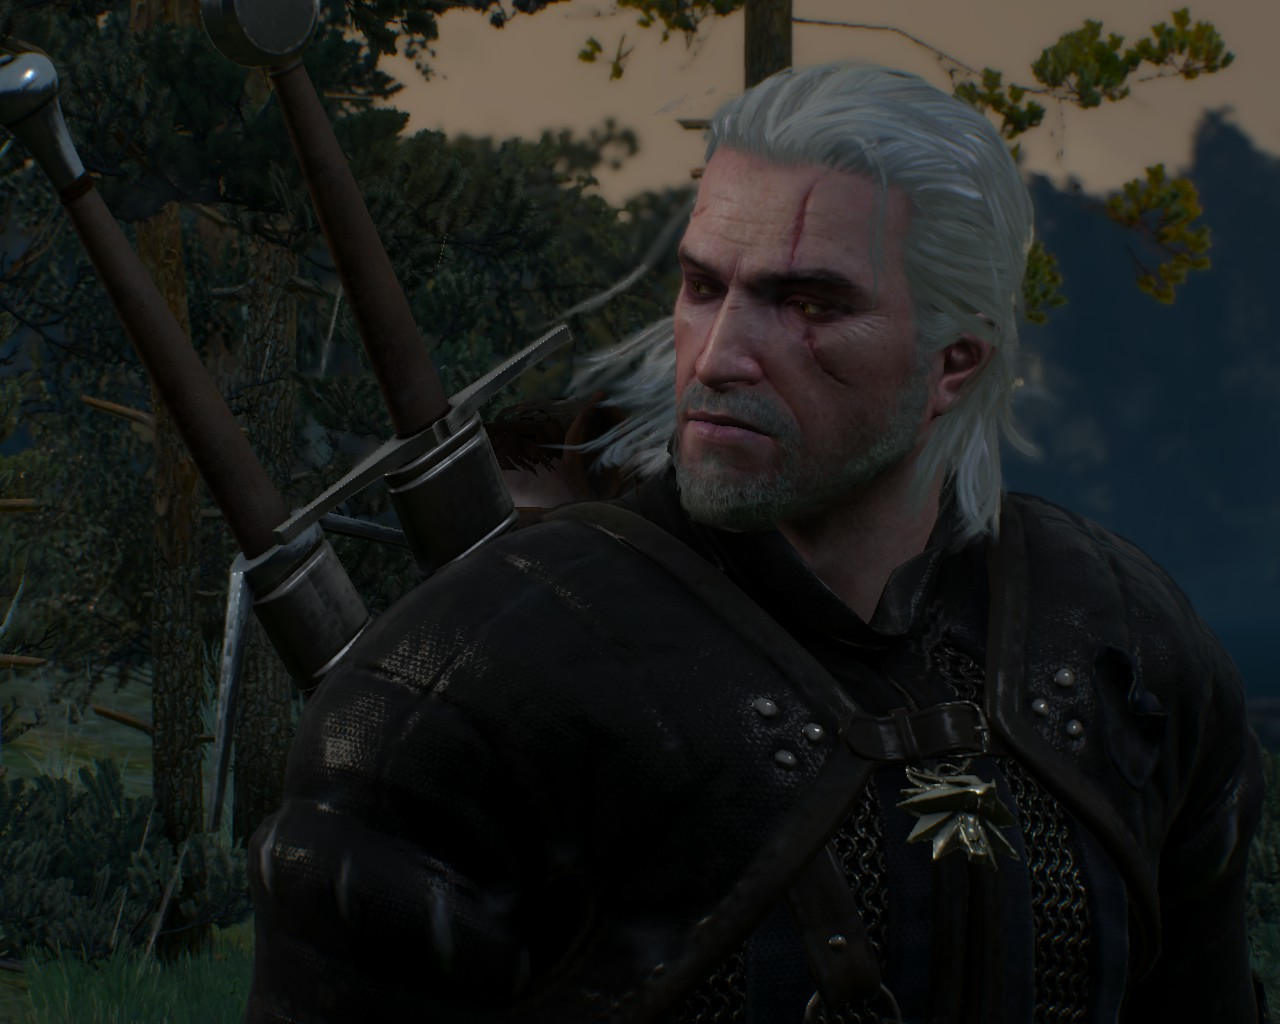 20181007231647_1.jpg - Witcher 3: Wild Hunt, the